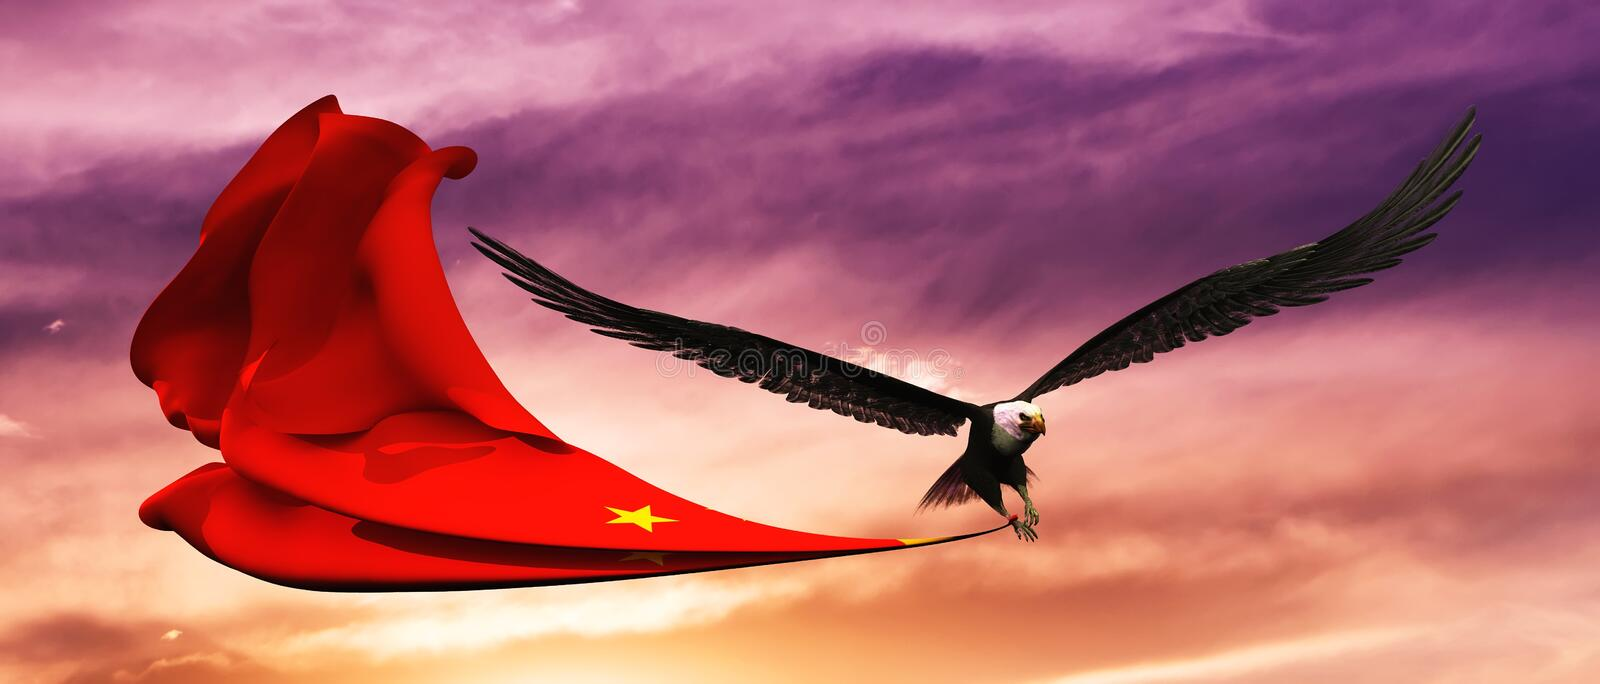 3d illustration of eagle and flag floating in the wind royalty free illustration